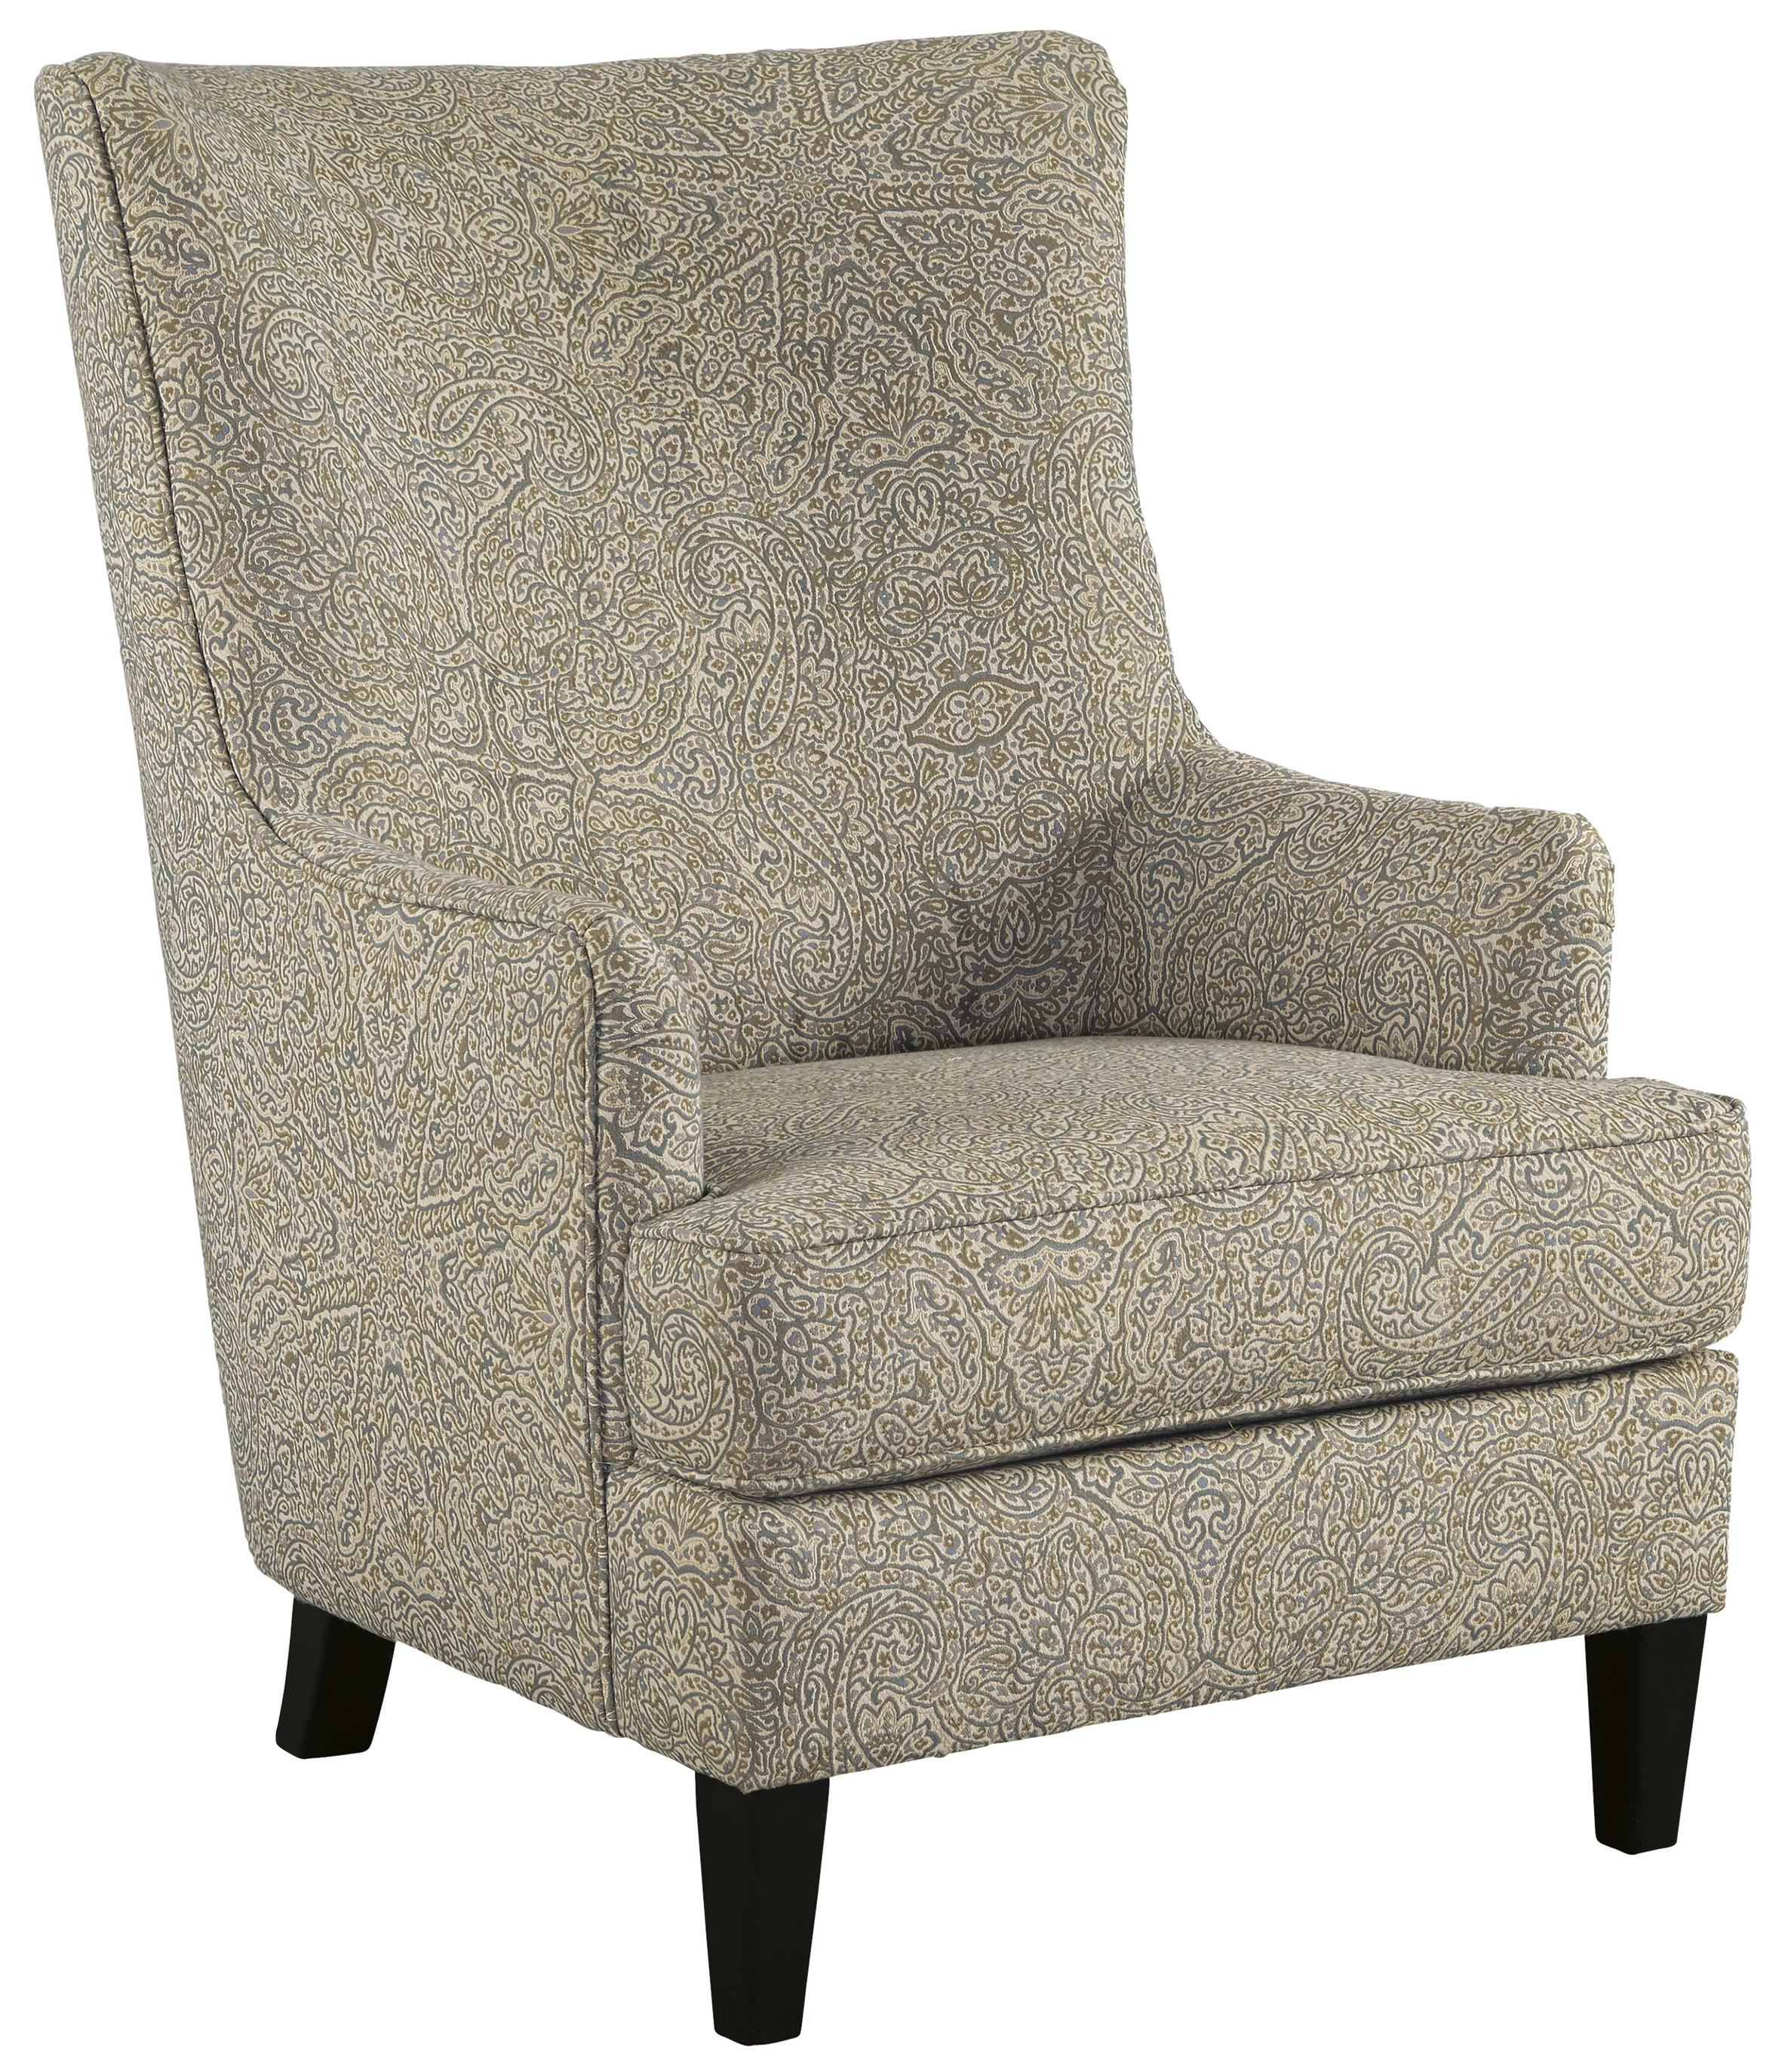 Signature Design By Ashley Kieran Transtional Accent Chair